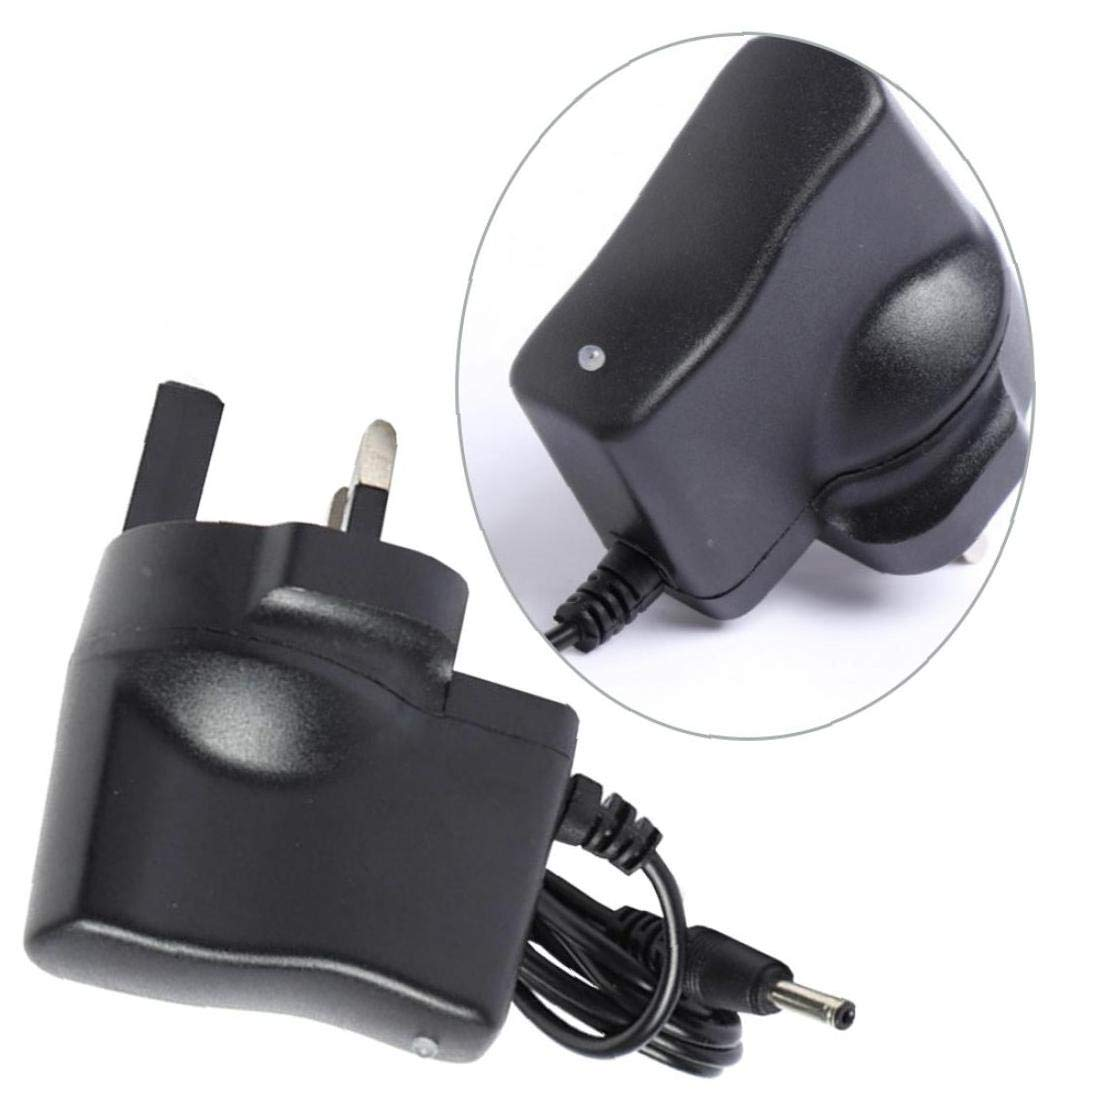 3.5mm Round Plug Car Charger AC 110V 220v to DC 4.2V 0.5A Power Adapter Supplies Plug for 18650 Rechargeable Battery Torch UK Plug